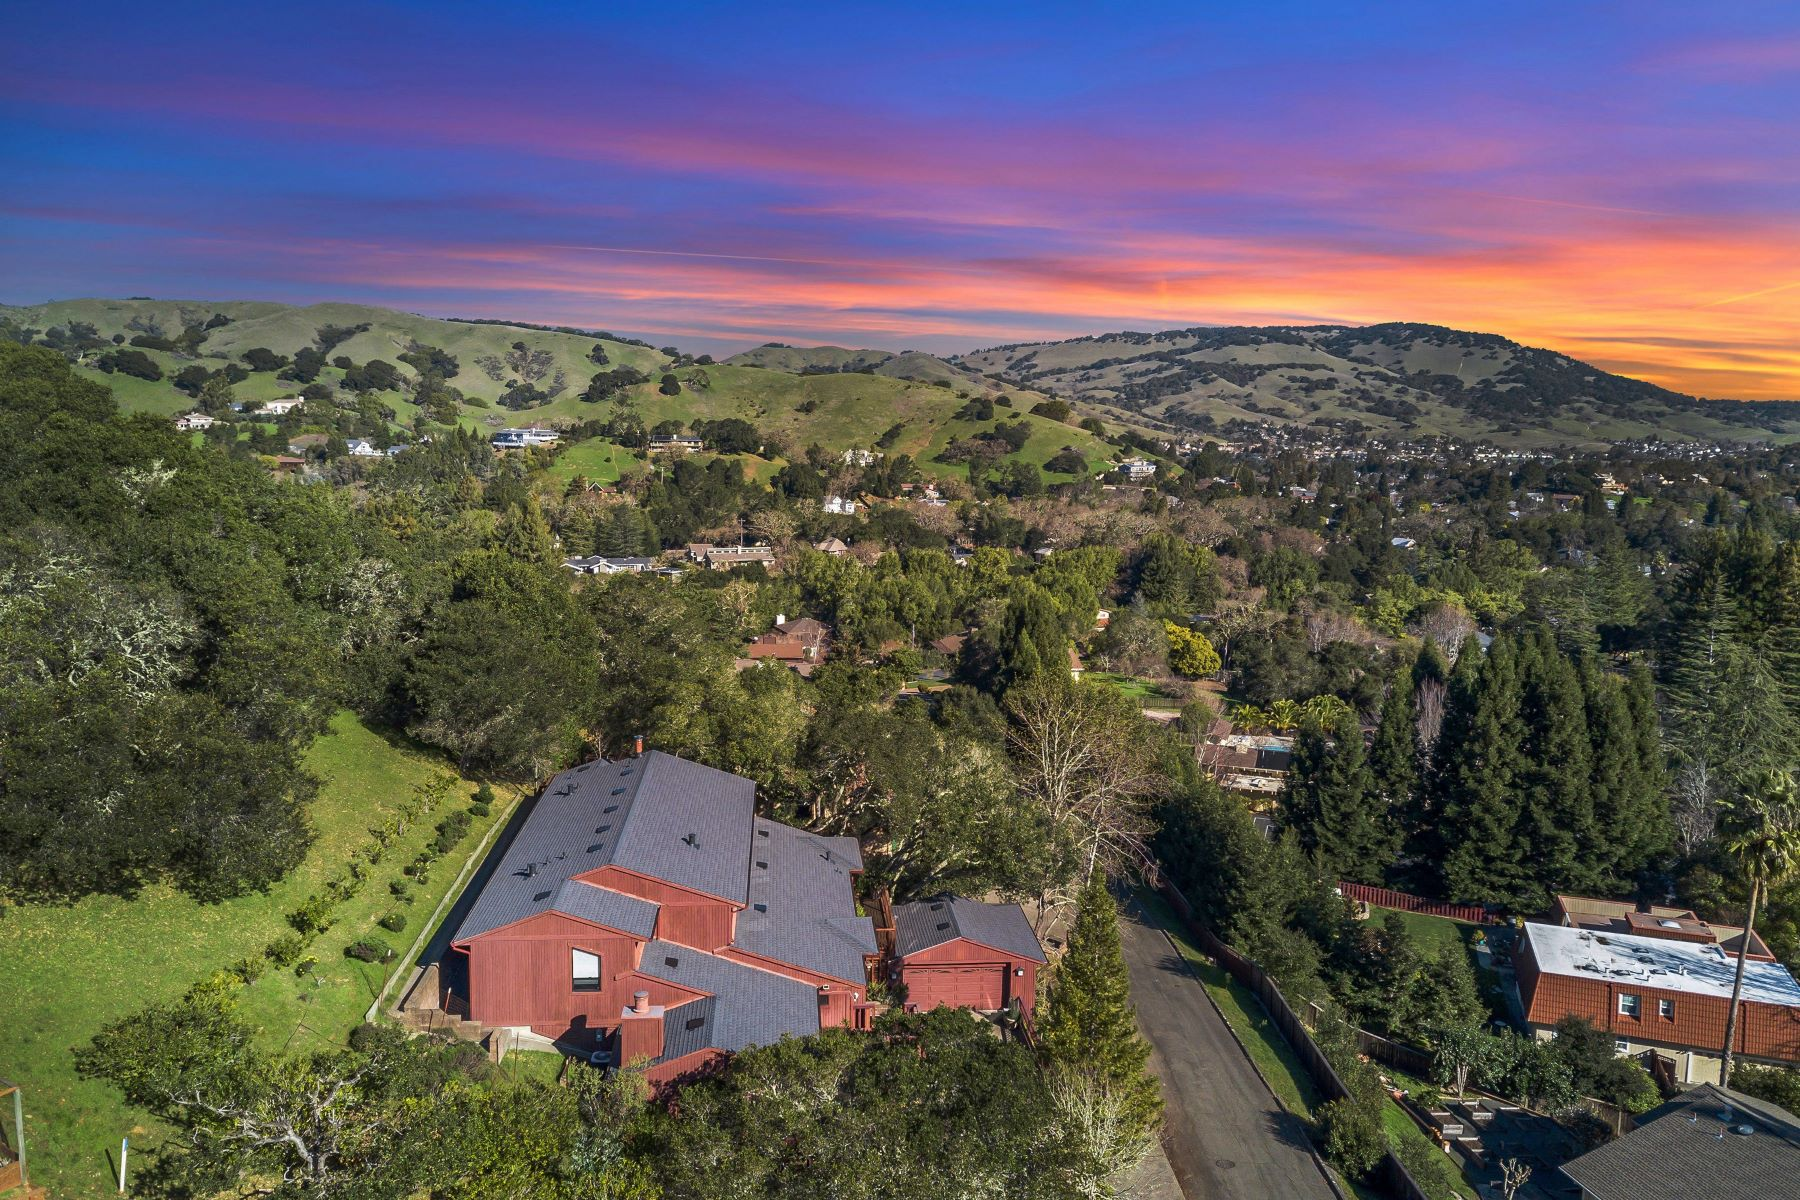 Single Family Homes for Sale at Large, Fully Remodeled Wild Horse Valley Property 60 Pinto Lane Novato, California 94947 United States